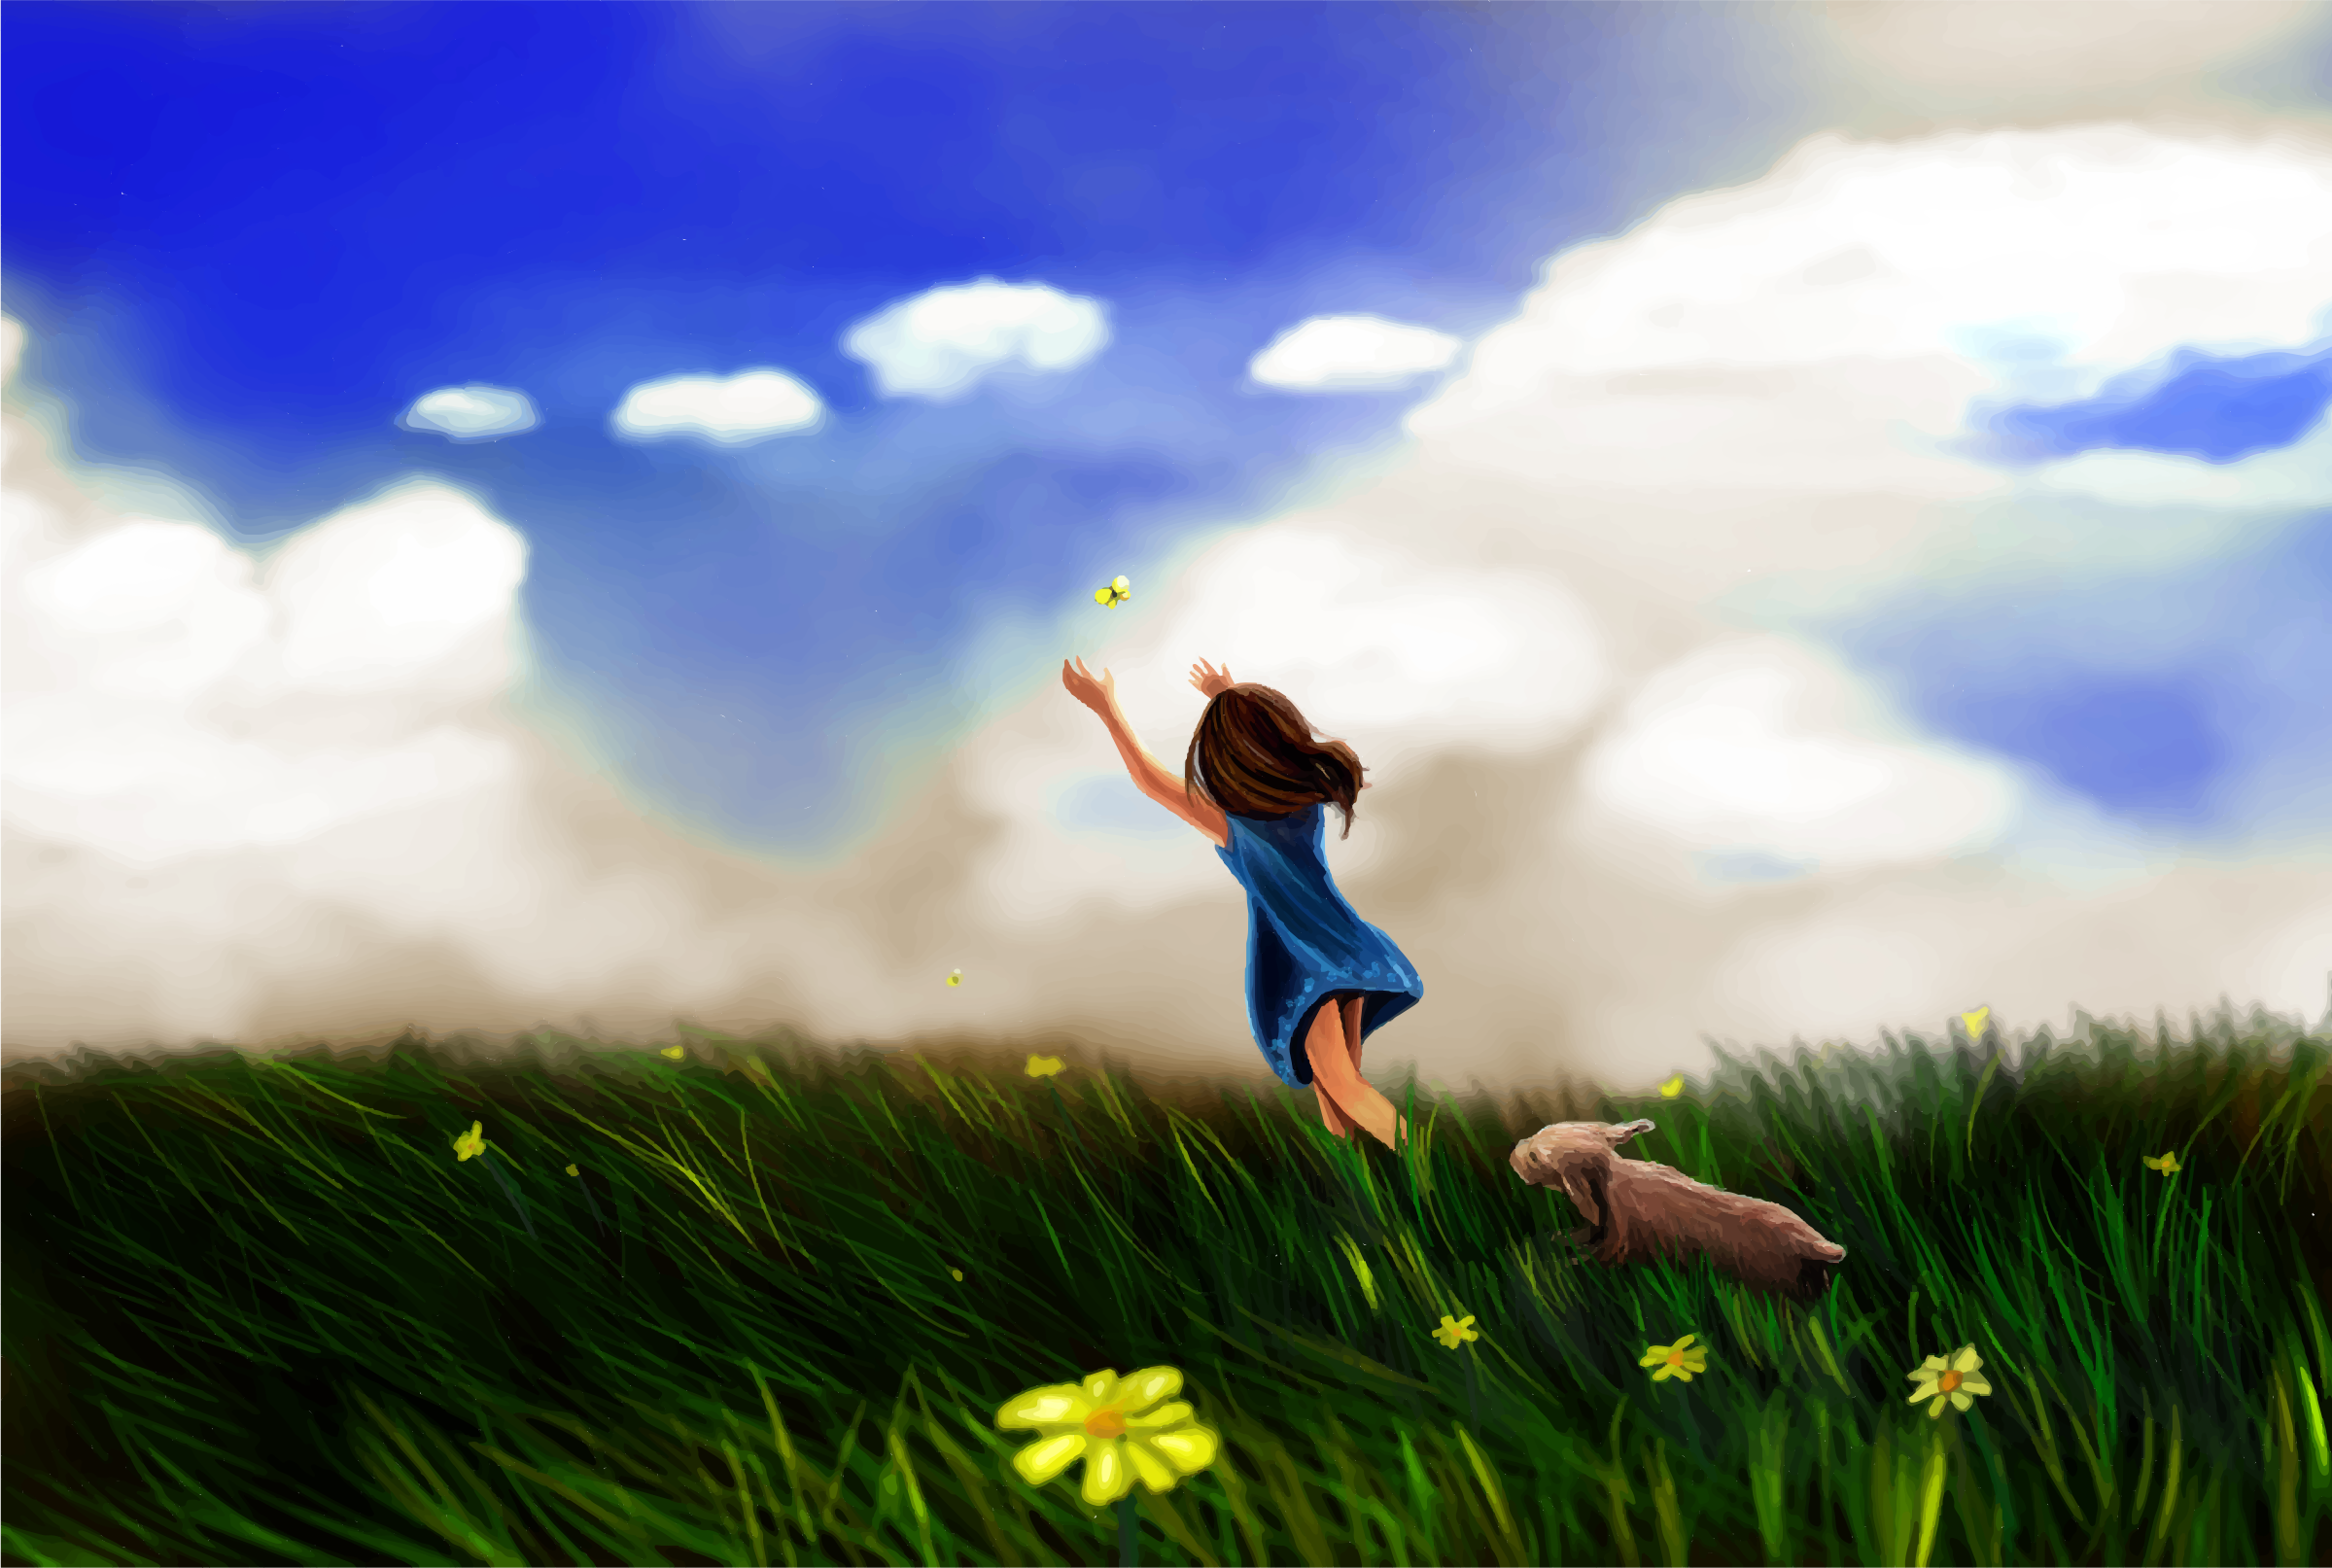 Little Girl Chasing Butterfly In An Open Field by GDJ